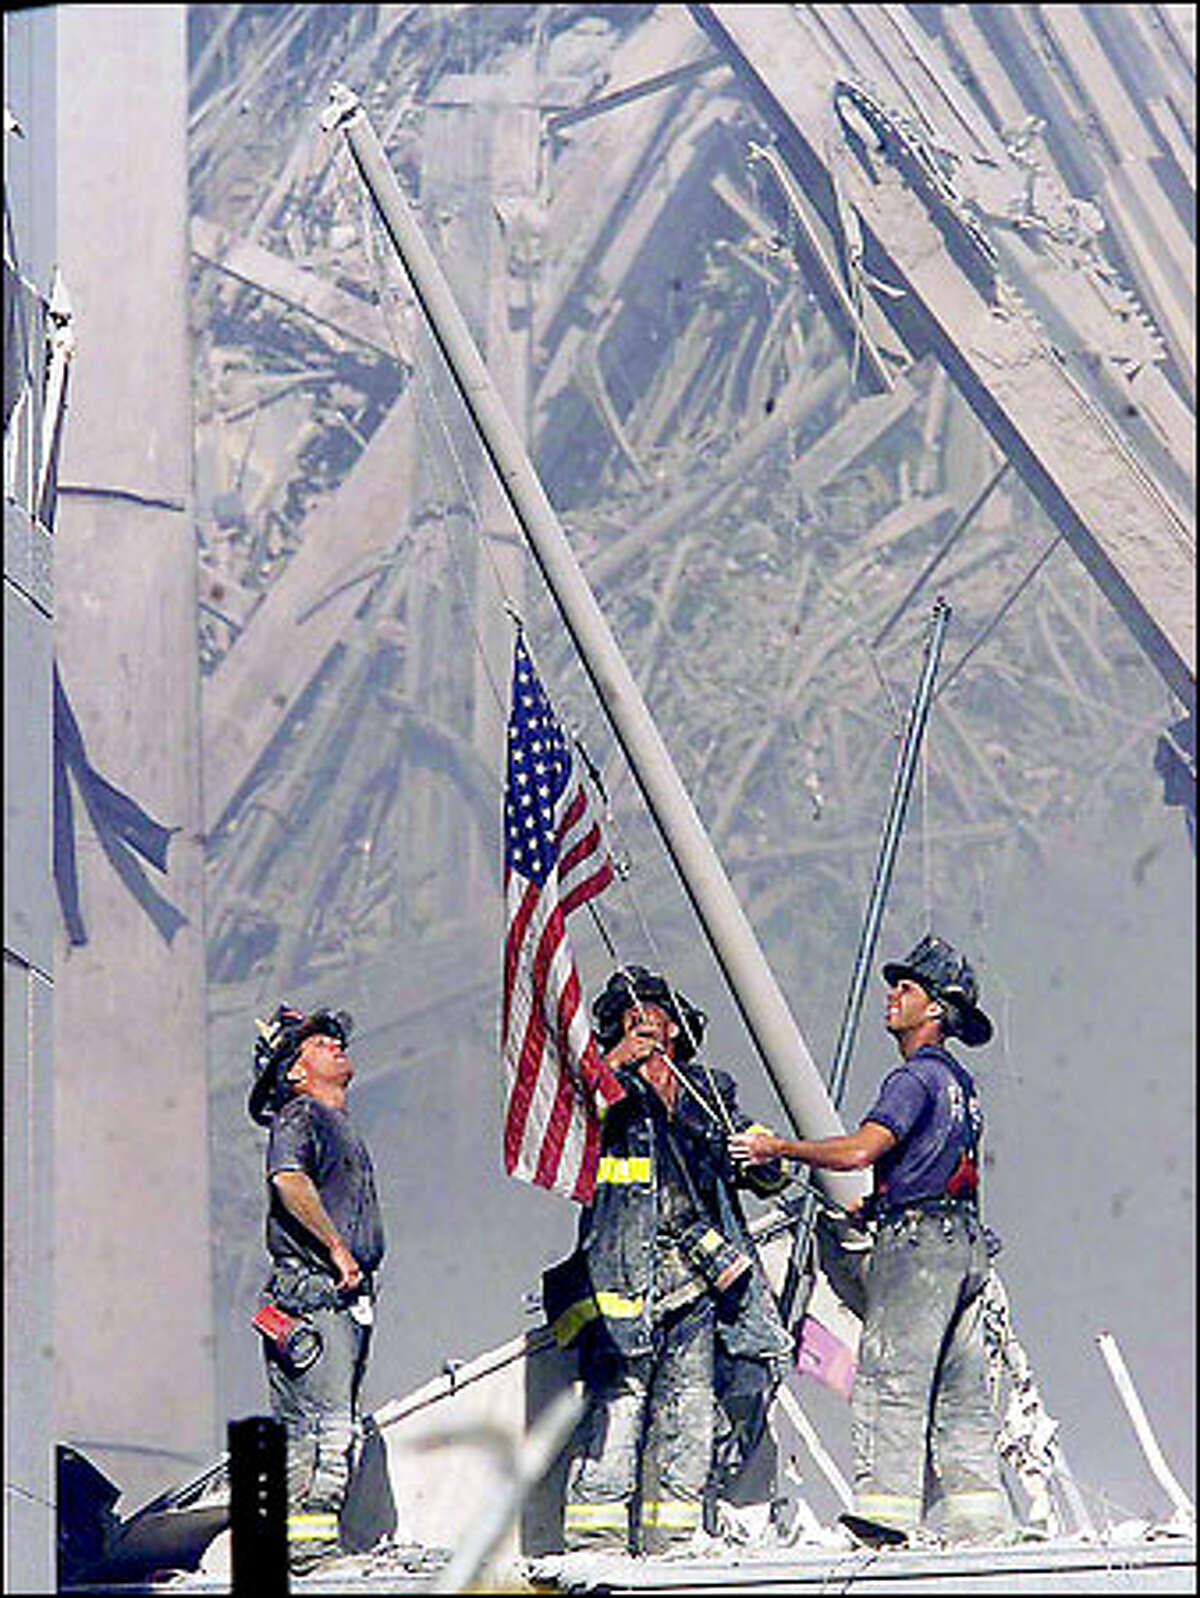 September 11: Brooklyn firefighters George Johnson, left, of Ladder 157, Dan McWilliams, center, of Ladder 157, and Billy Eisengrein, of Rescue 2, raise a flag at the World Trade Center in New York.